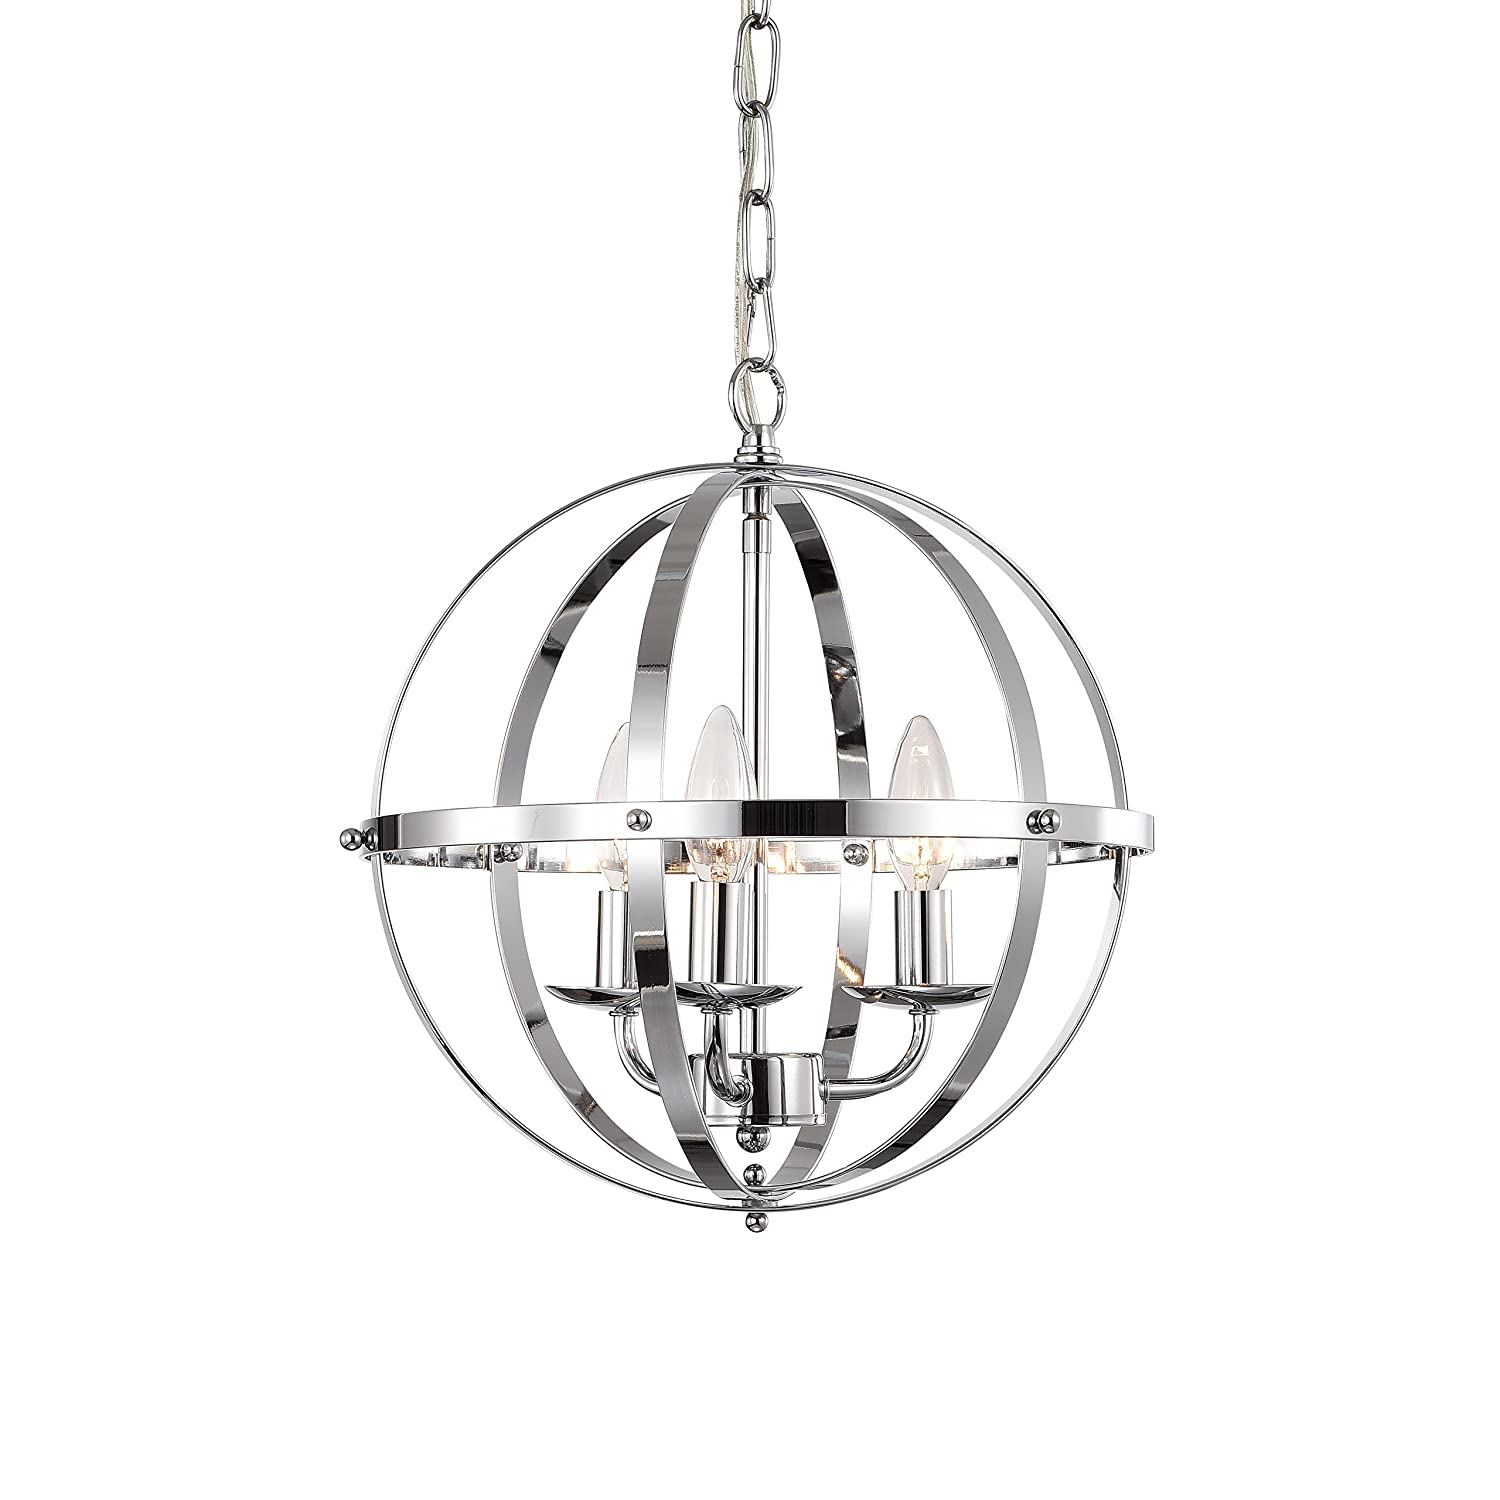 LaLuLa Chandeliers Orb Chandelier Three- Light Pendant Lighting Globe Chandeliers for Foyer Lighting Adjustable Pendant Light Fixtures Chrome Chandelier with UL Listed